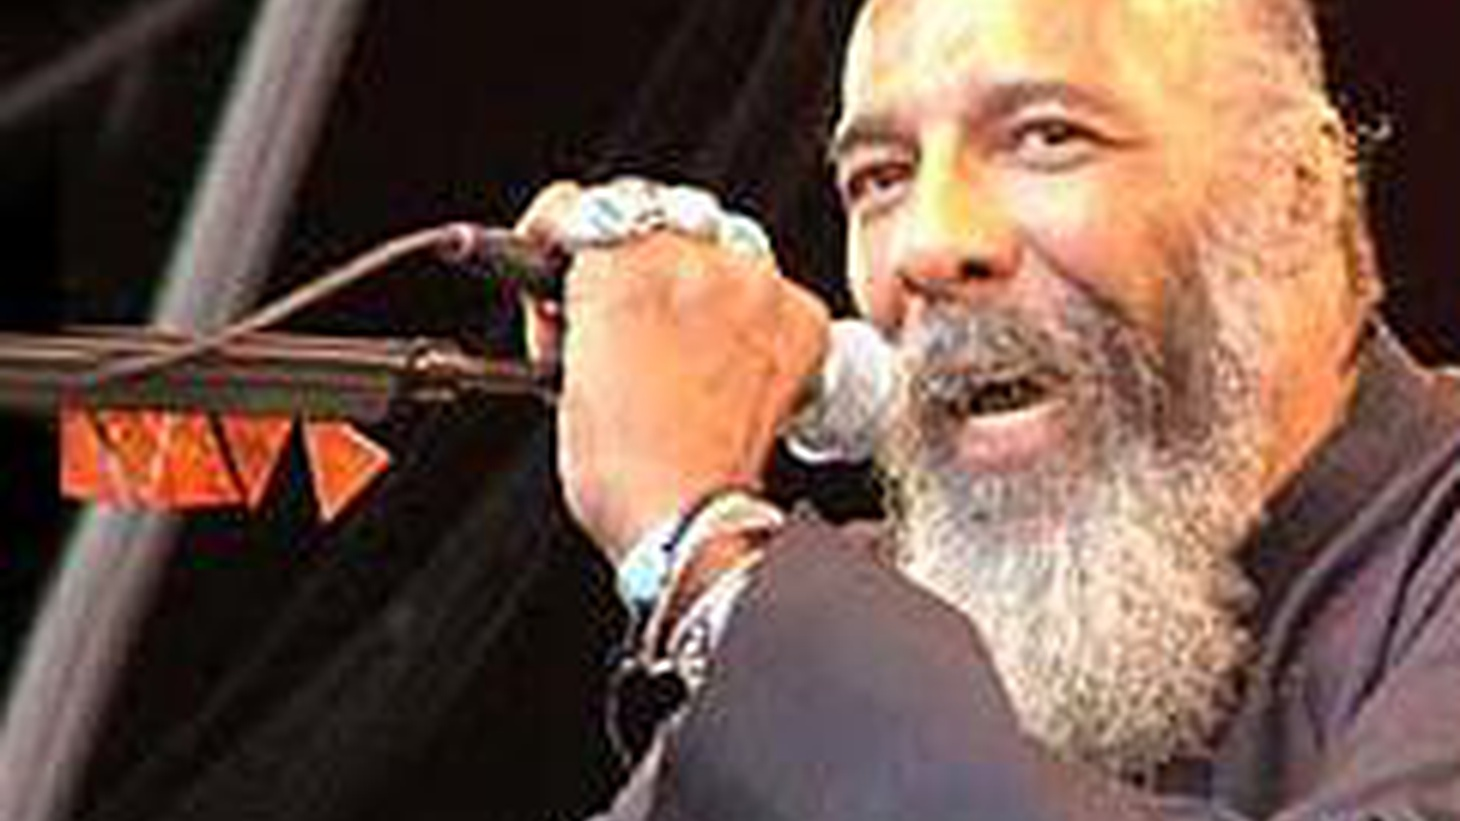 Richie Havens is a master troubadour, a folk hero has been emulated by everyone. His lyrics, vocal prowess and guitar rhythms are unparalleled. His 27th release is just as great as his first...